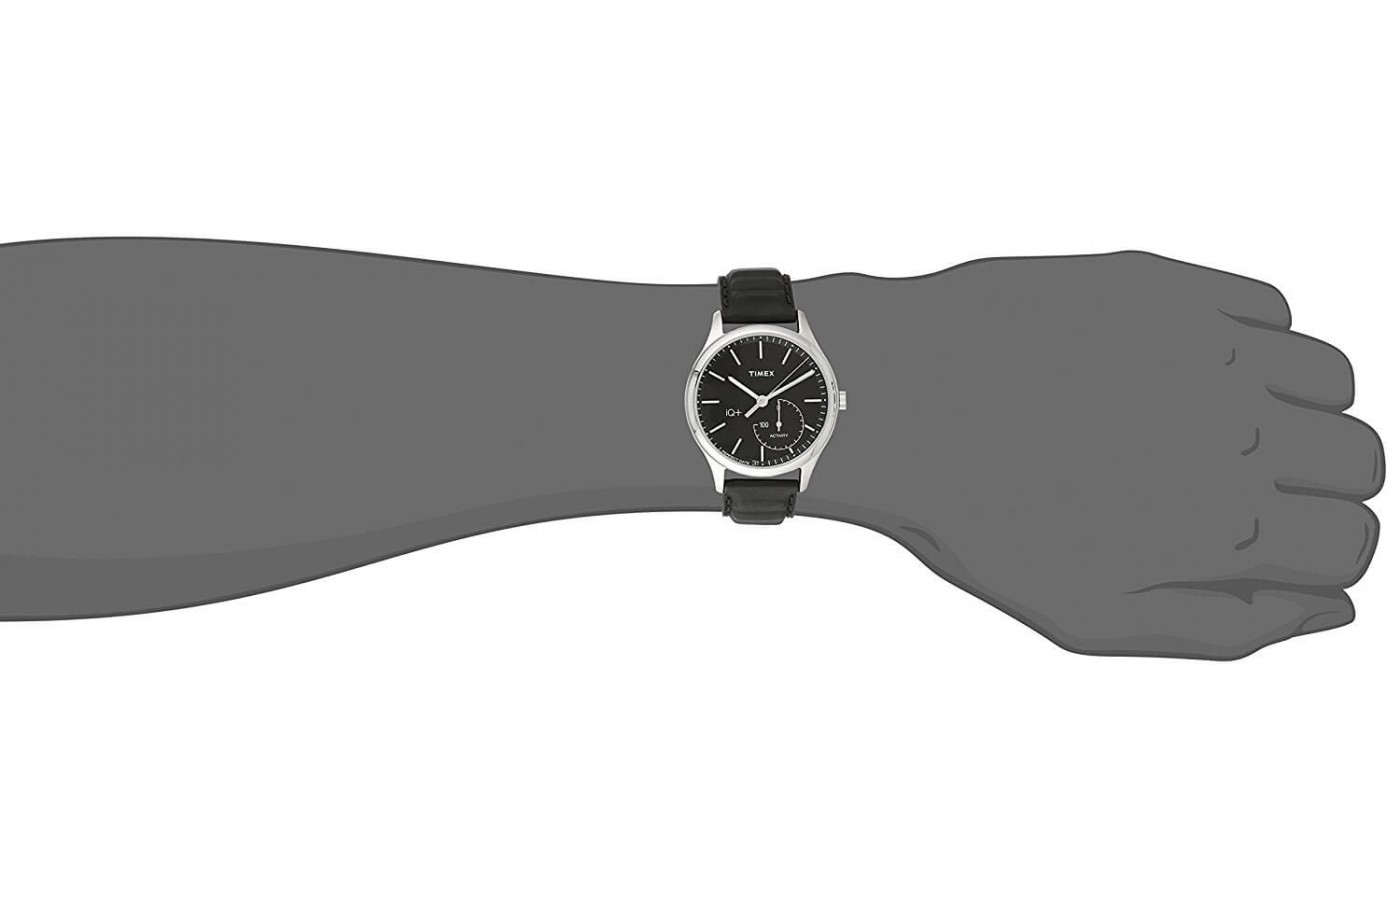 The Timex IQ + Move is Bluetooth enabled